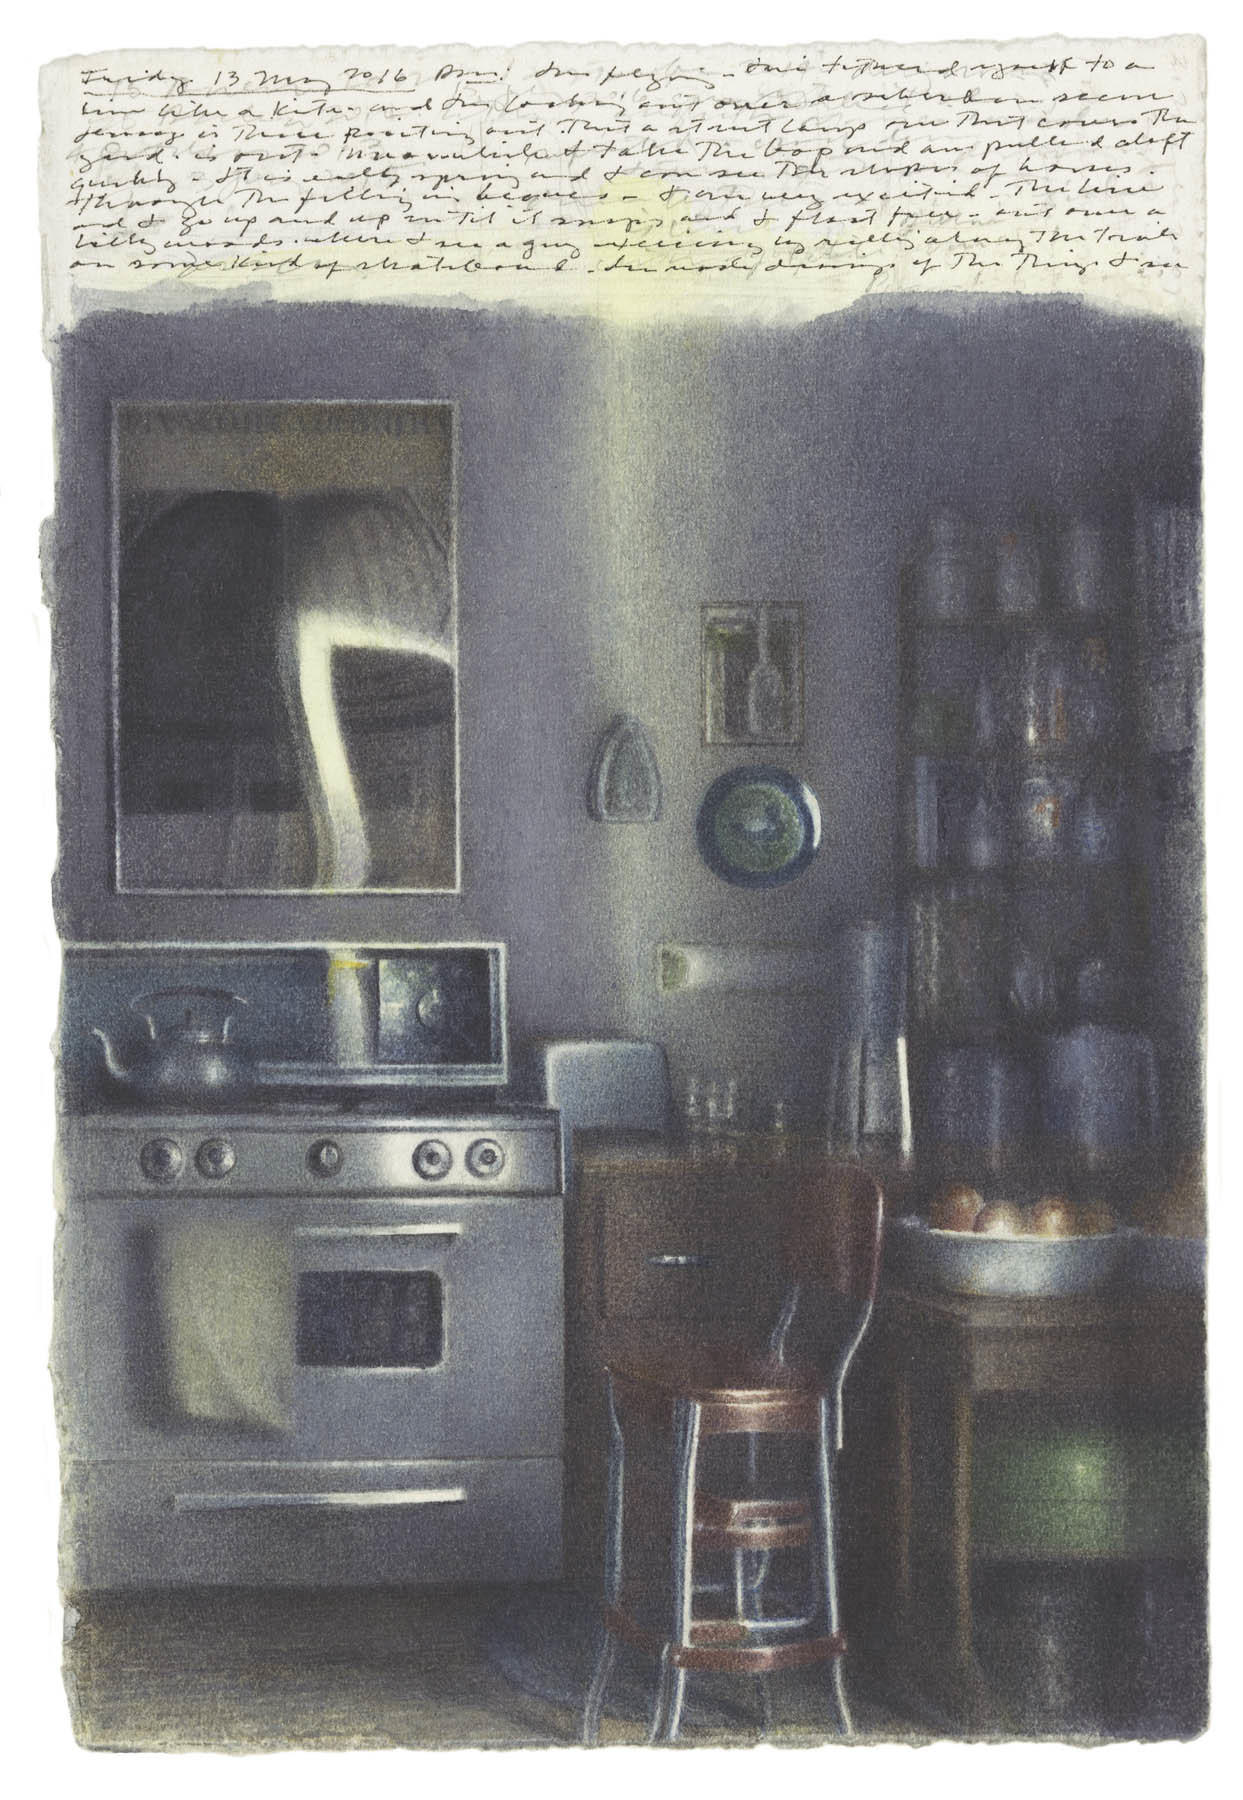 Kitchen with Shadows and Reflections image